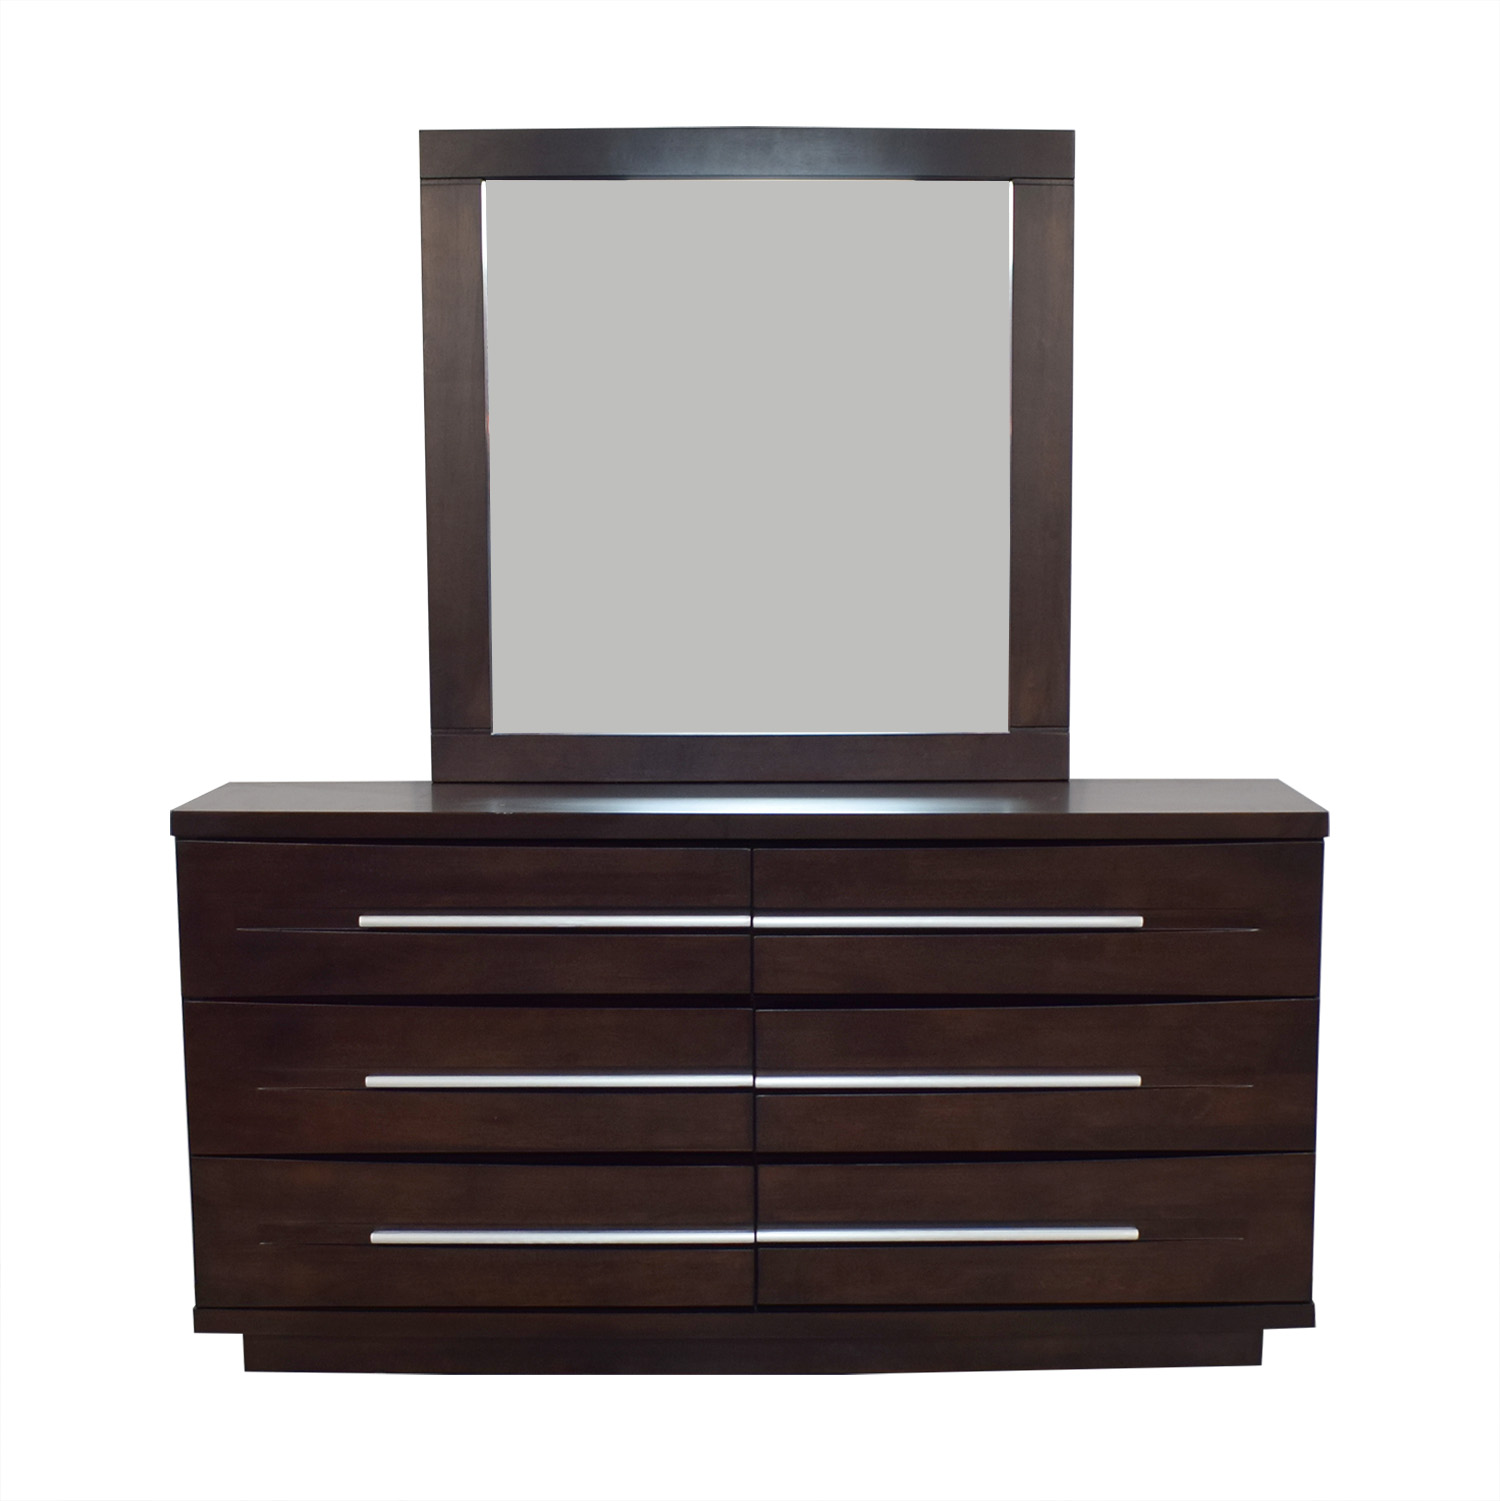 Casana Furniture Casana Furniture Dresser with Mirror on sale